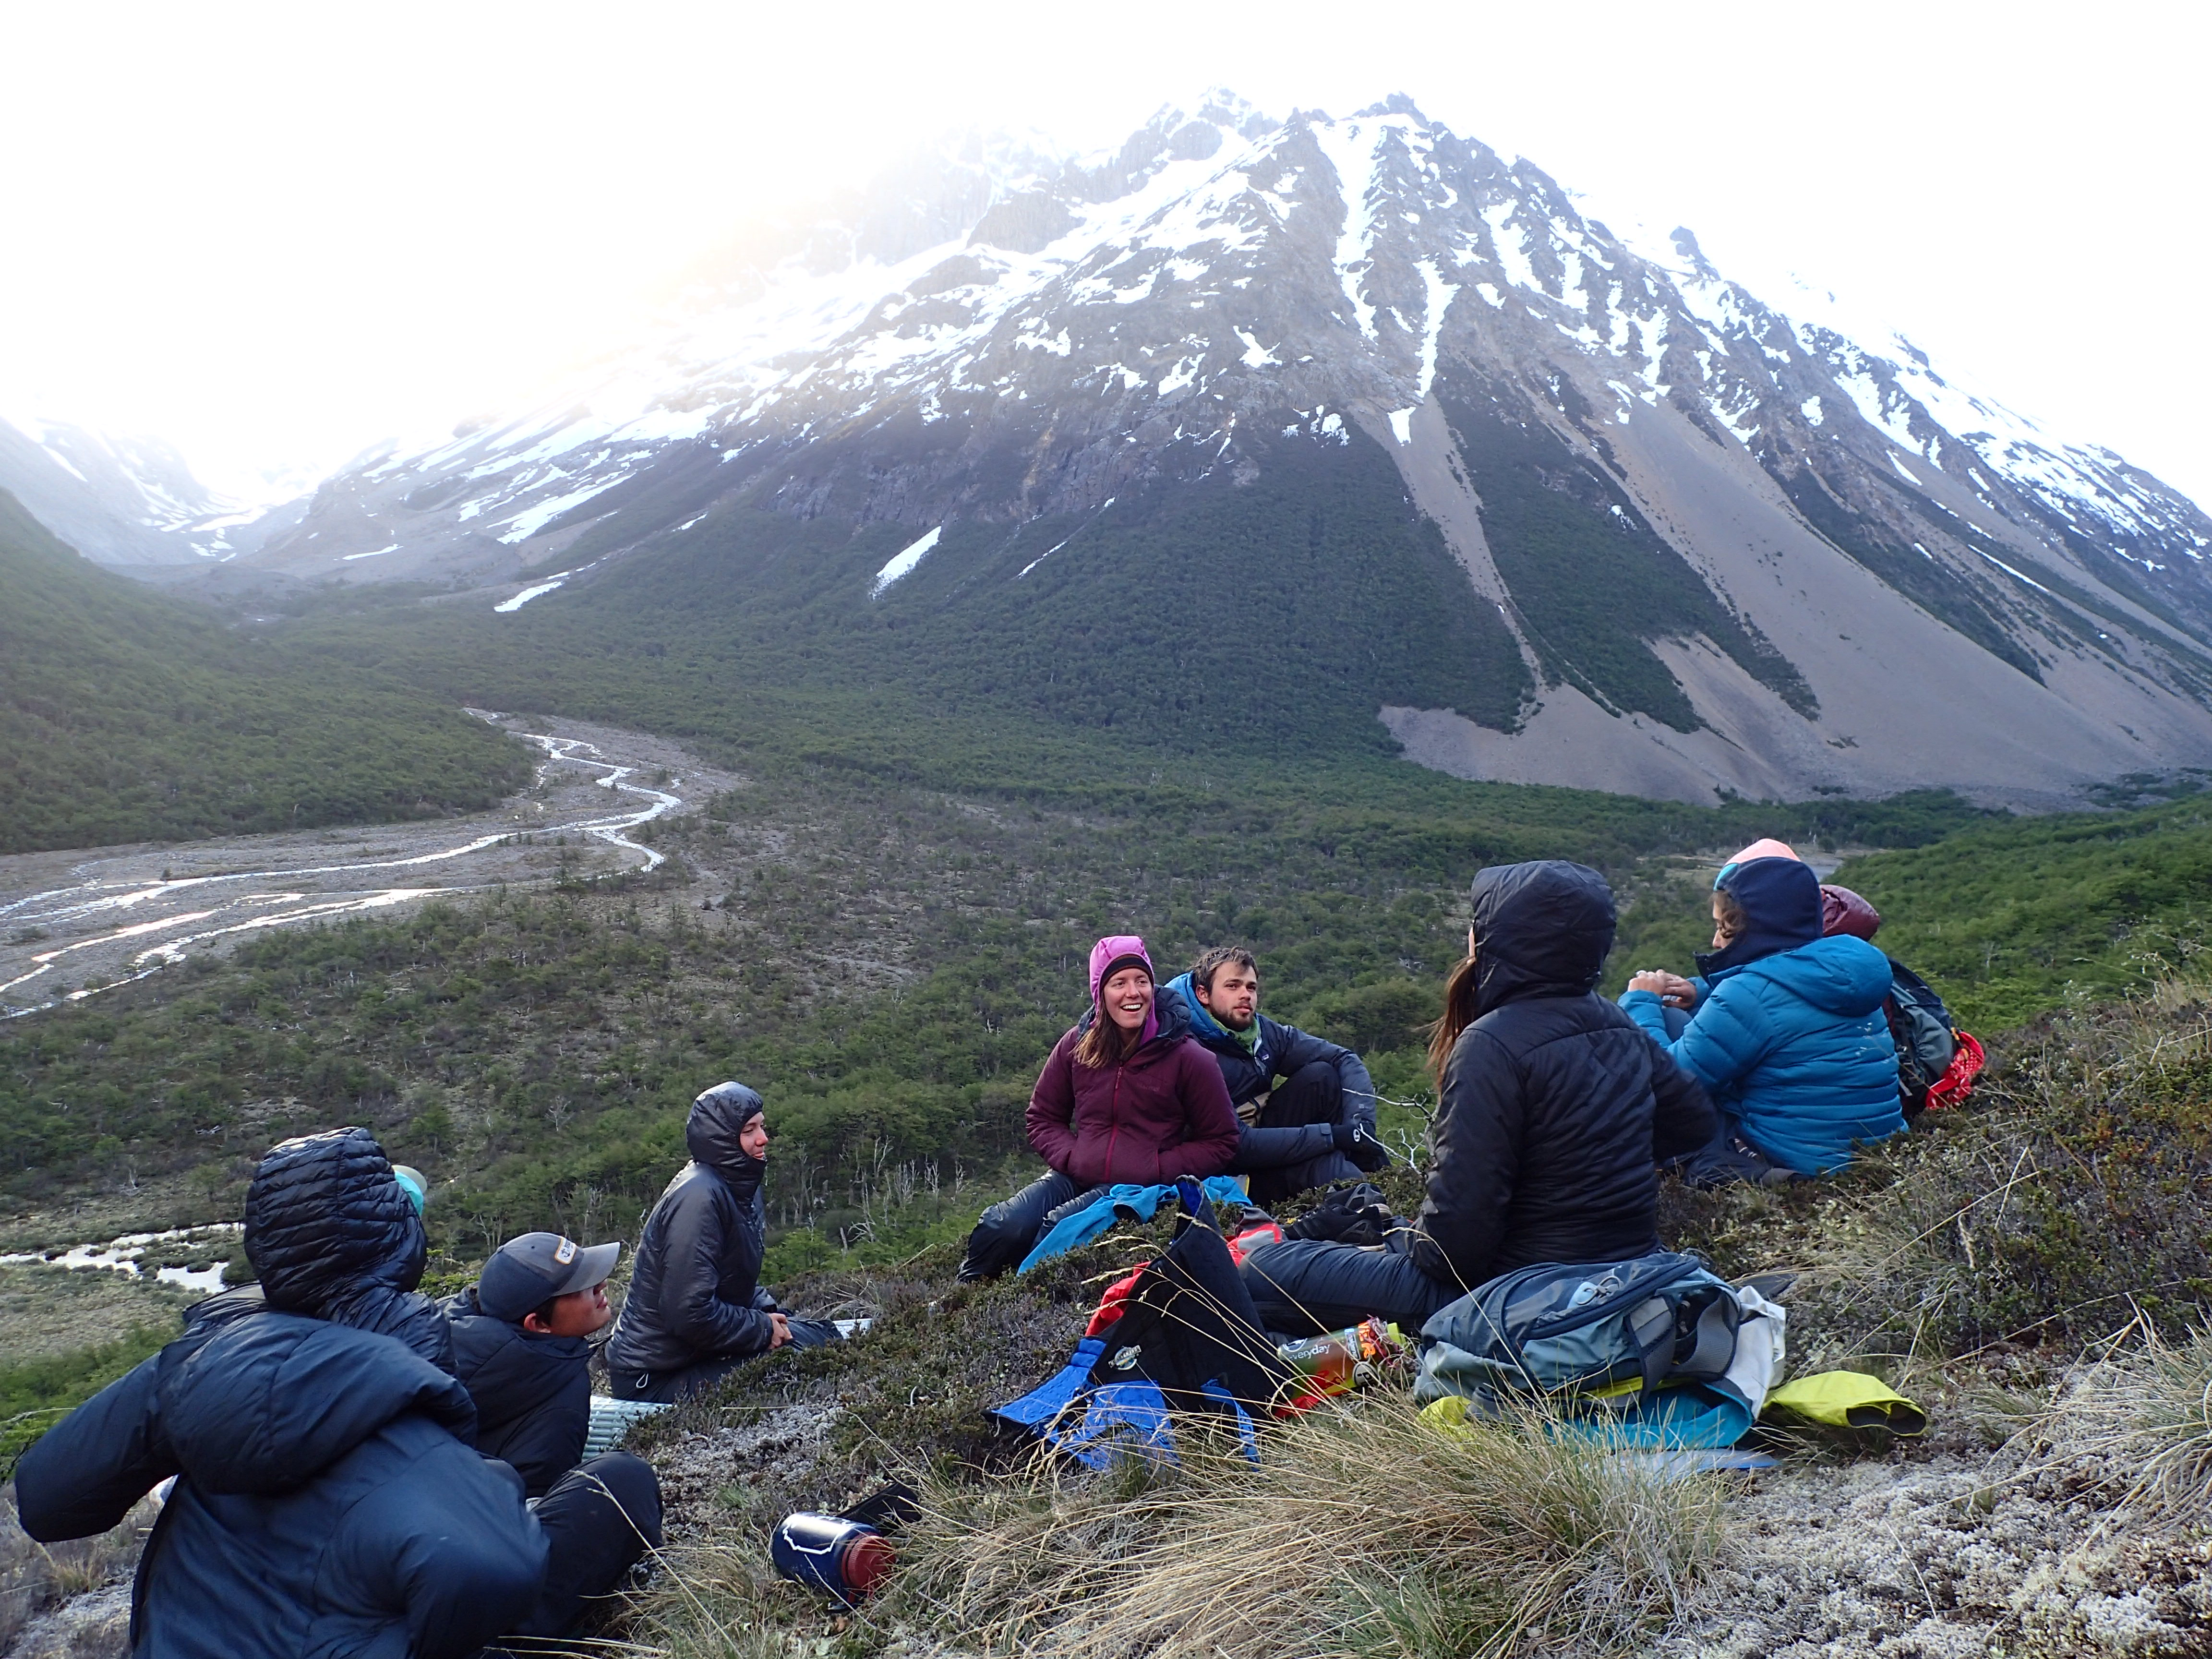 Gap Year Program - High Mountain Institute Gap: Andes Leadership Semester  2